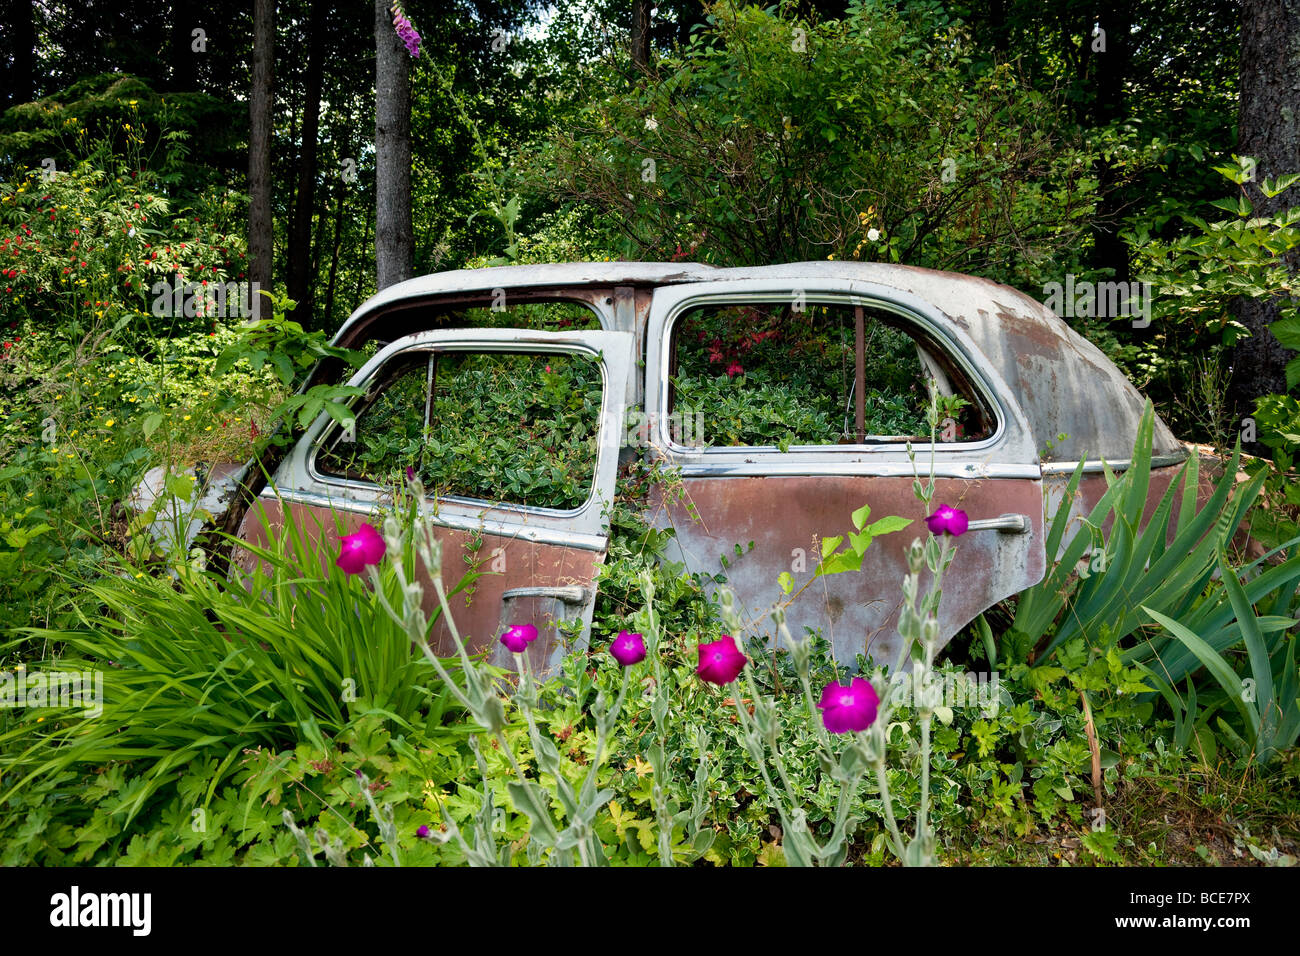 abandoned car with bushes growing through: the triumph of nature - Stock Image